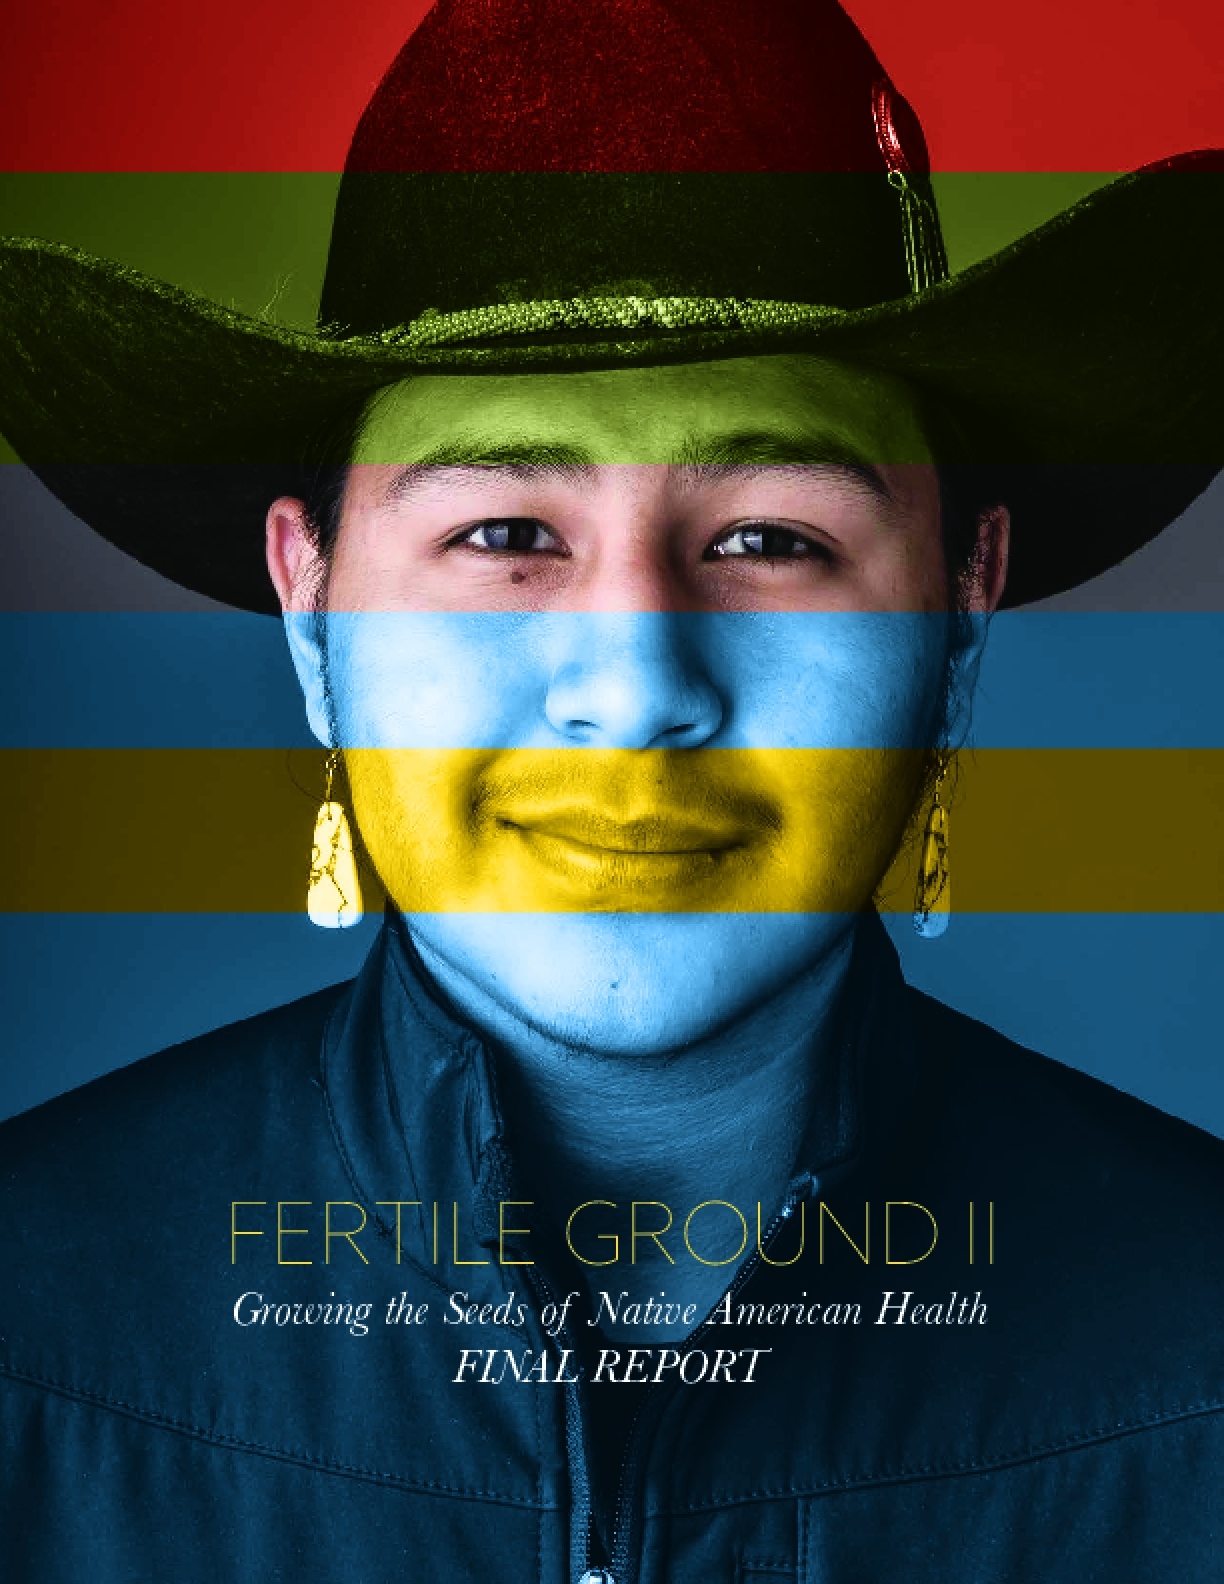 Fertile Ground II: Growing the Seeds of Native American Health